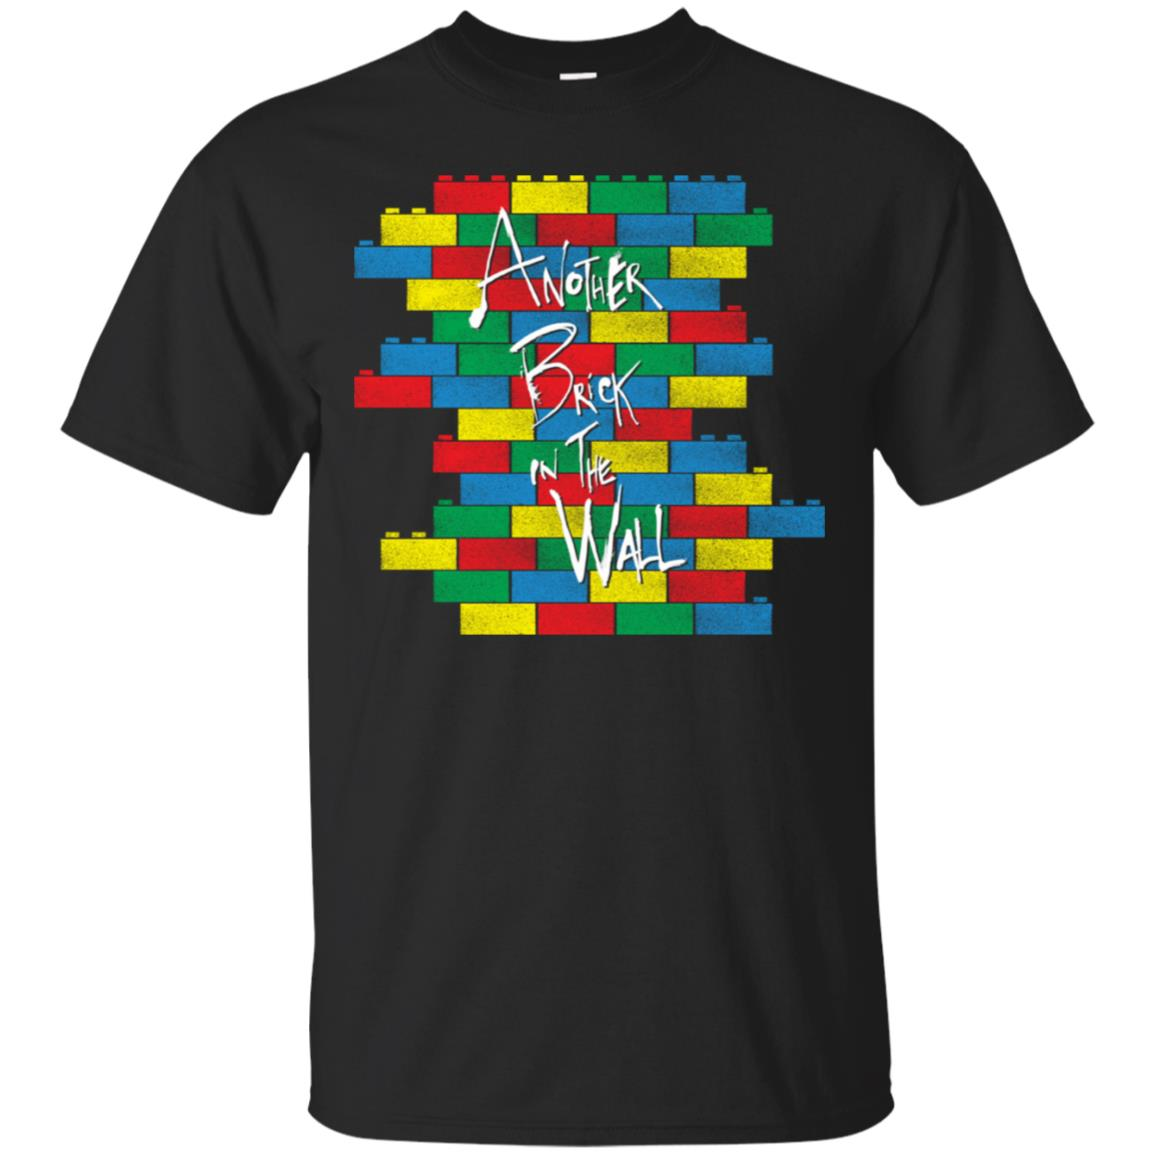 Another Brick In The Wall Colorful Funny T-Shirt 99promocode